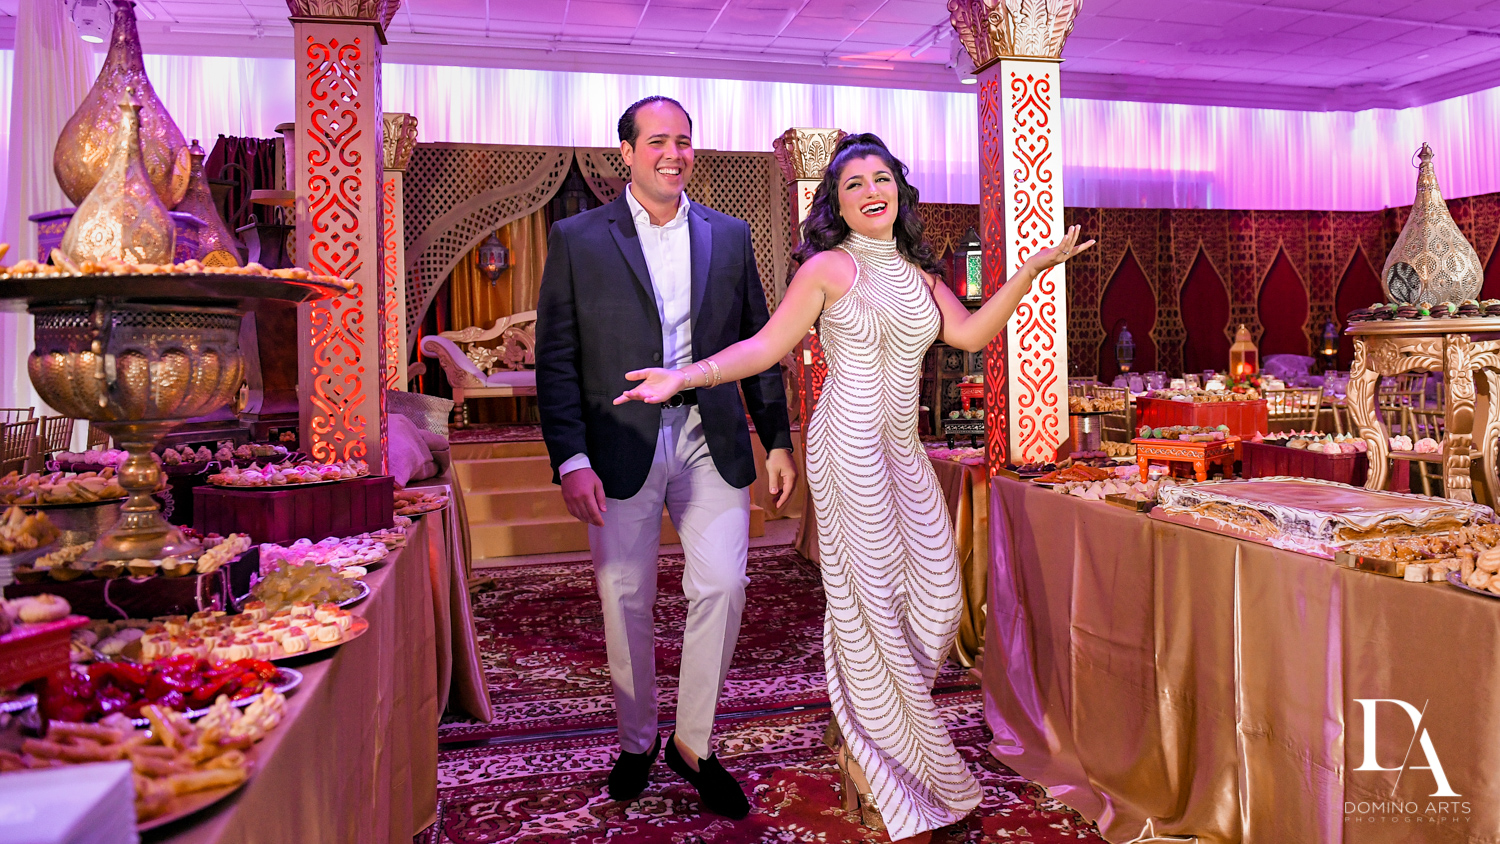 fun photos at Authentic Morrocan Jewish Henna Party by Domino Arts Photography